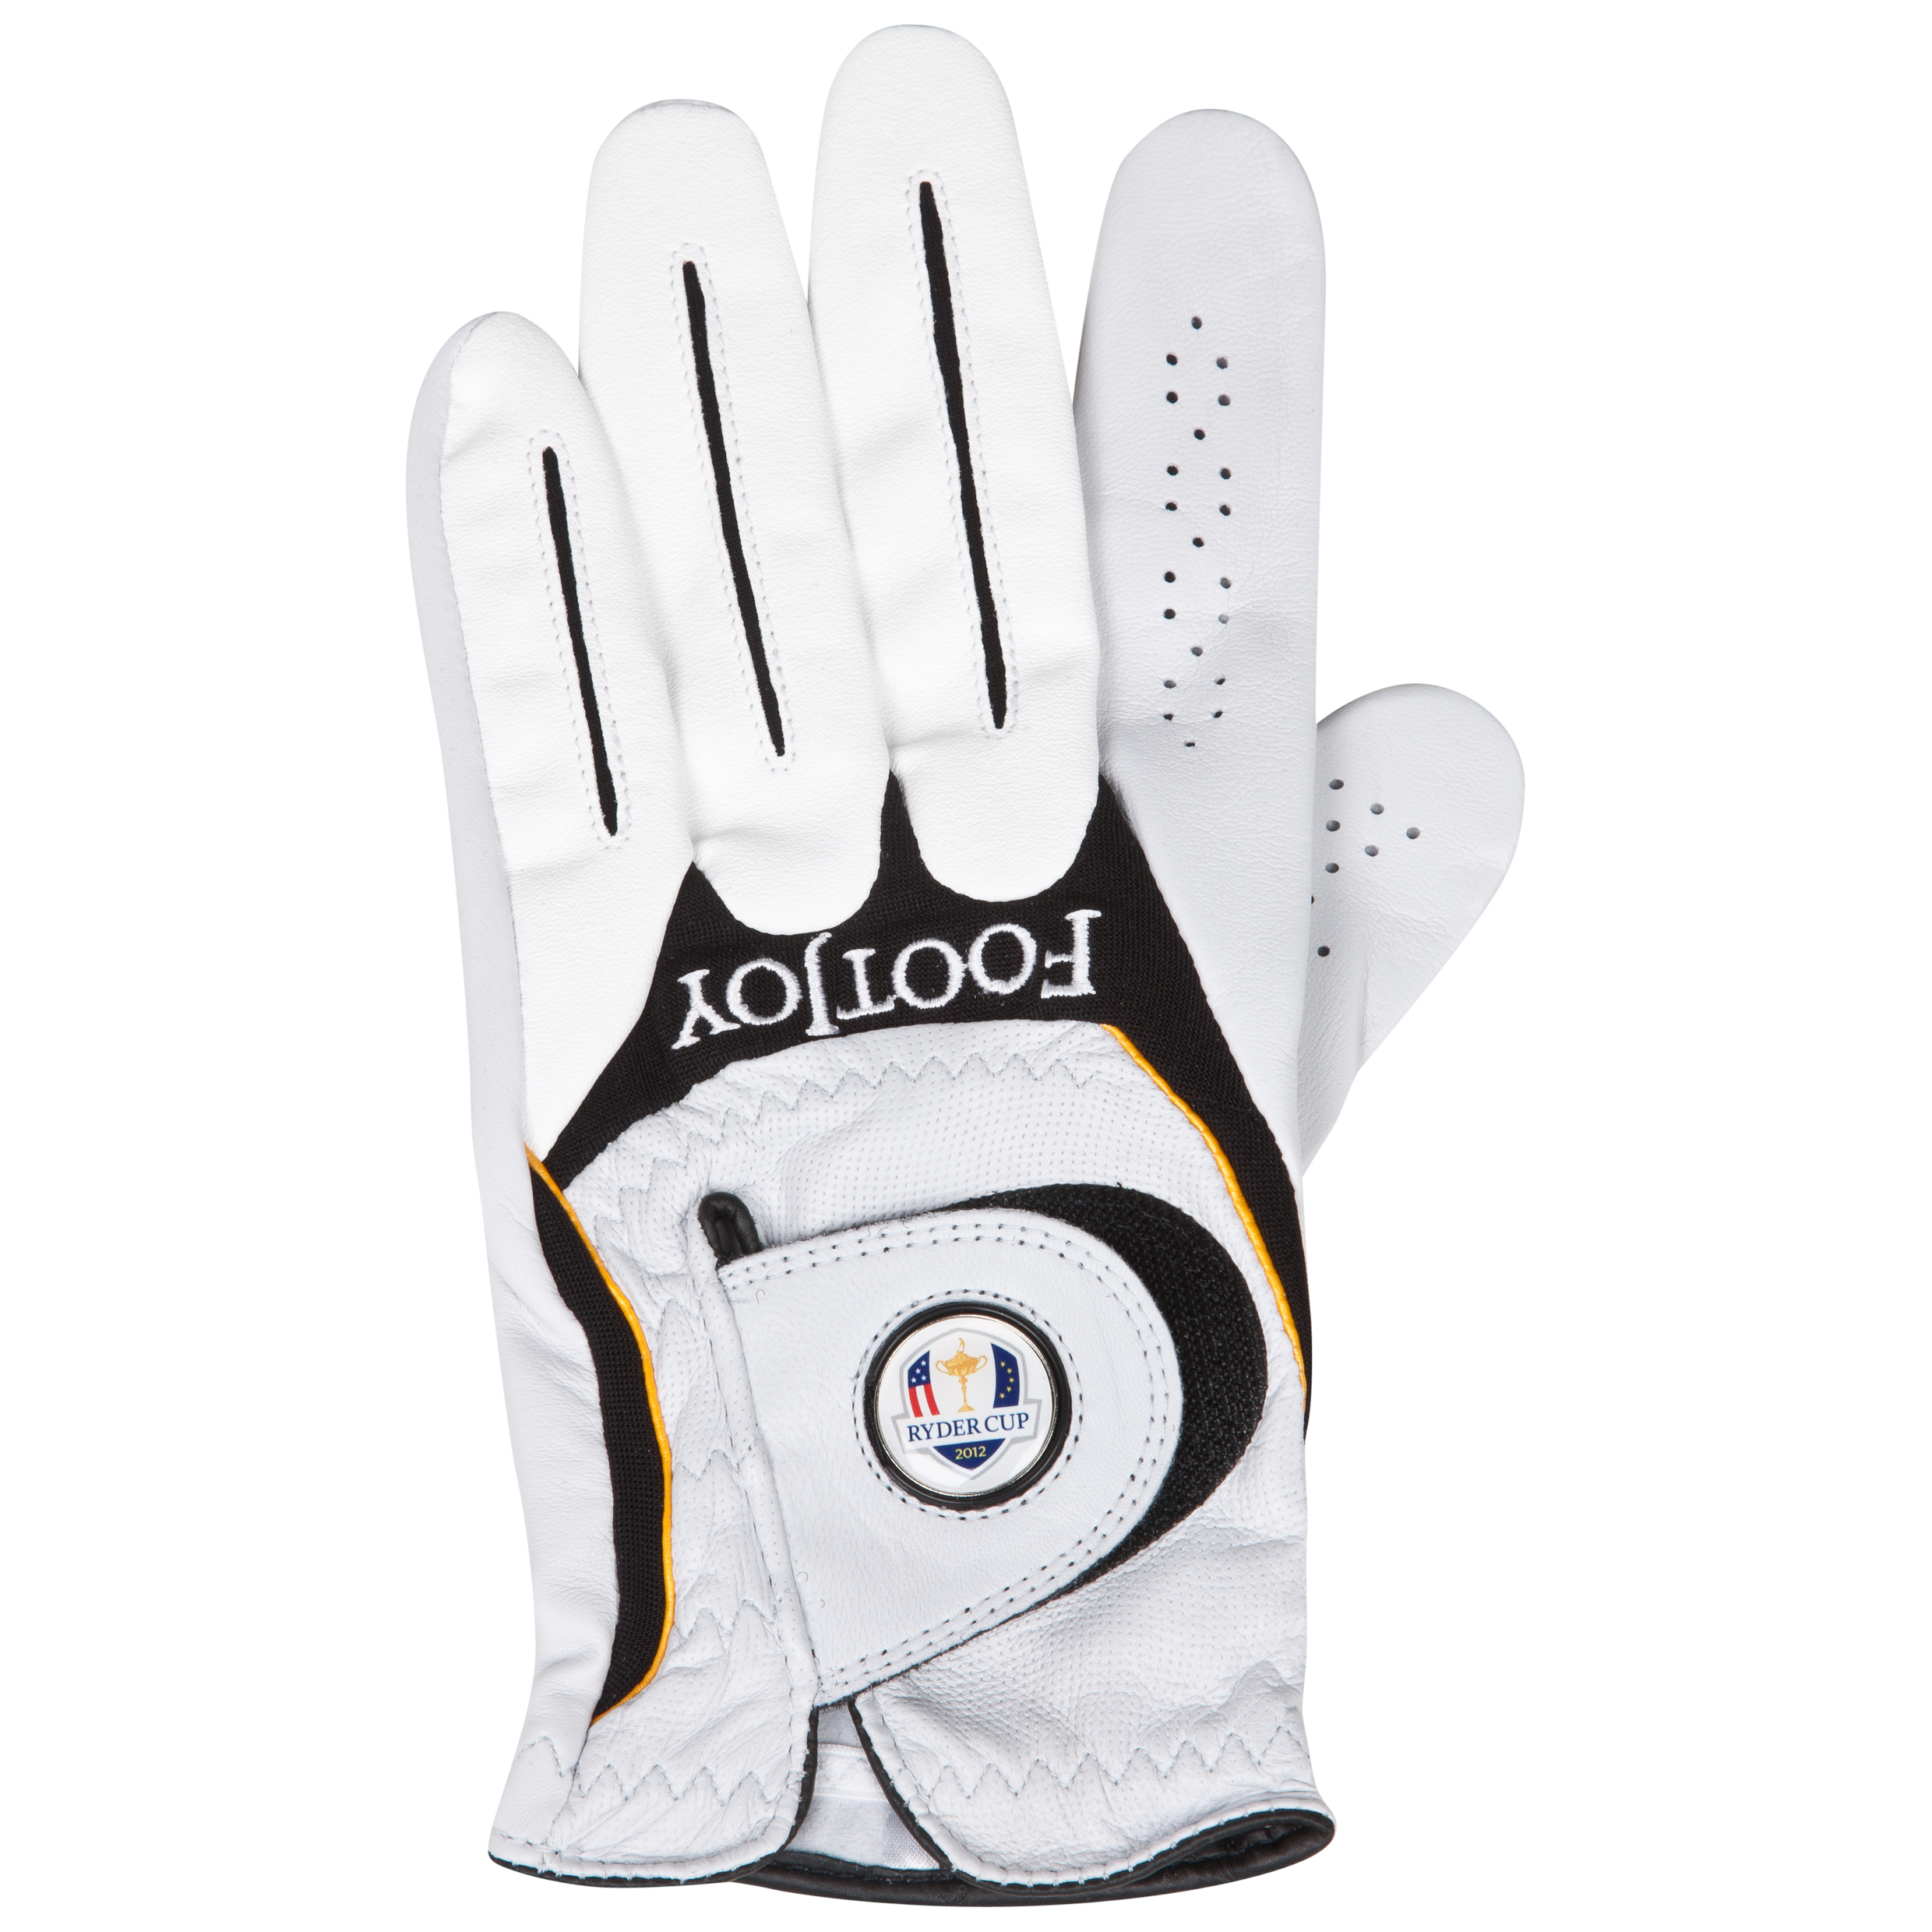 The Ryder Cup Medinah 2012 Leather Golf Glove